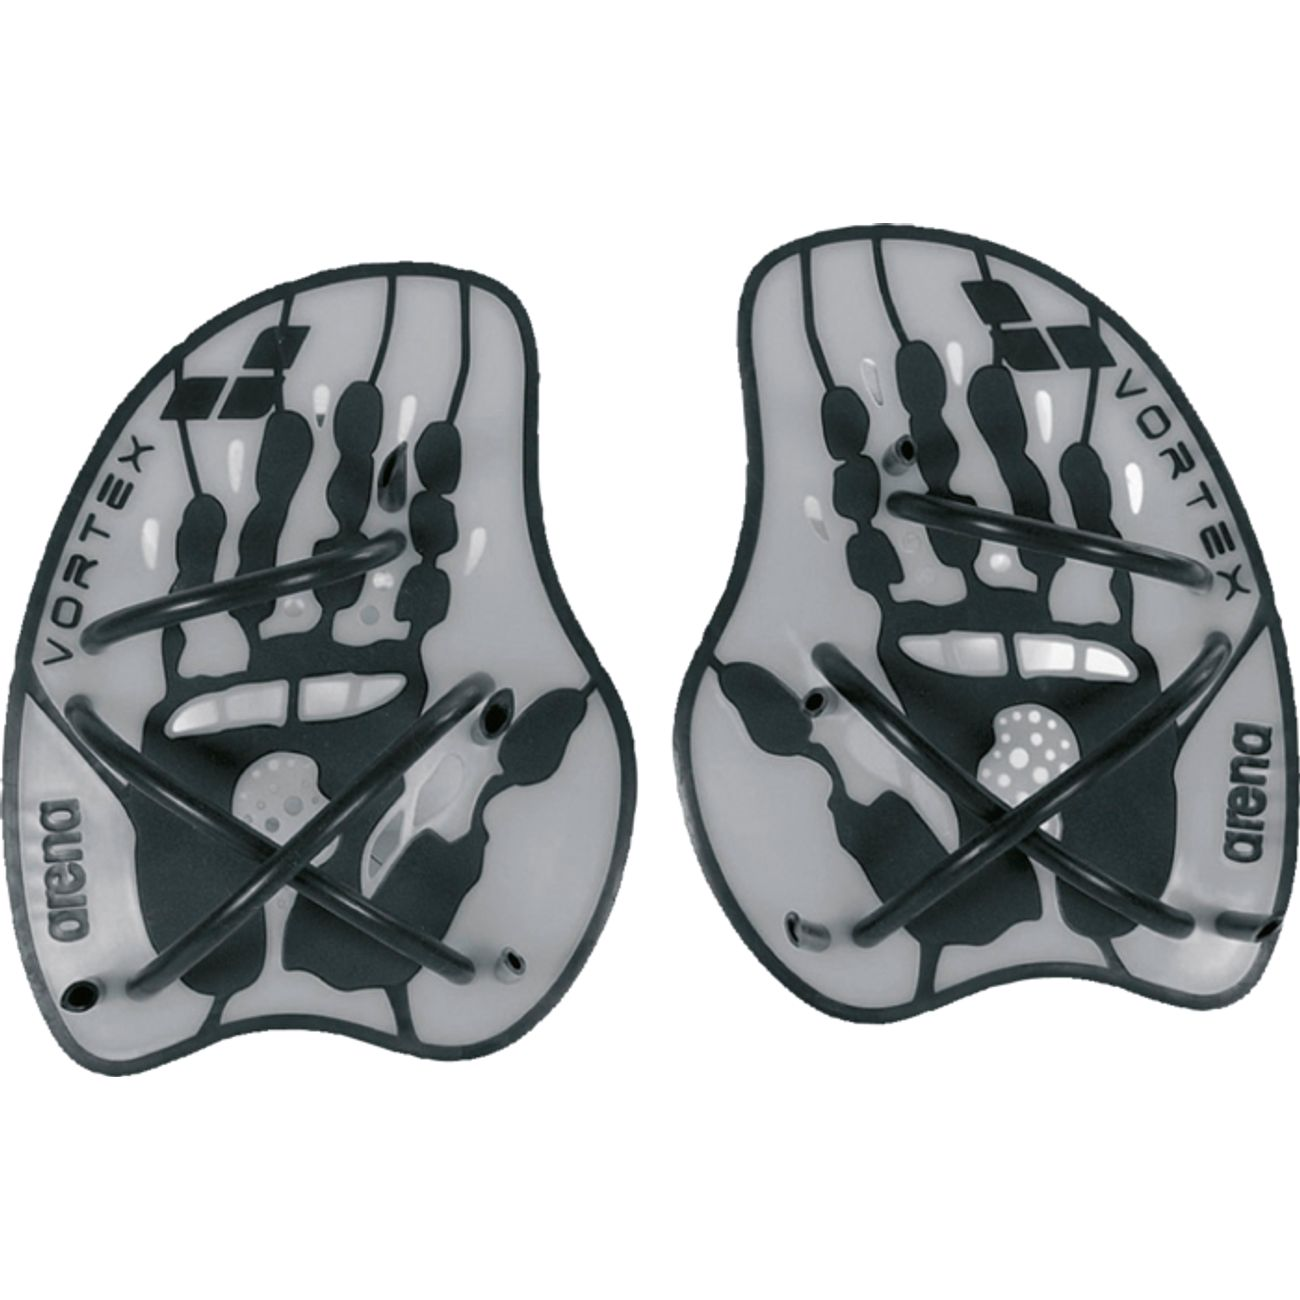 Arena Vortex Hand Paddle Adulte Natation Evolution OXwP0kn8